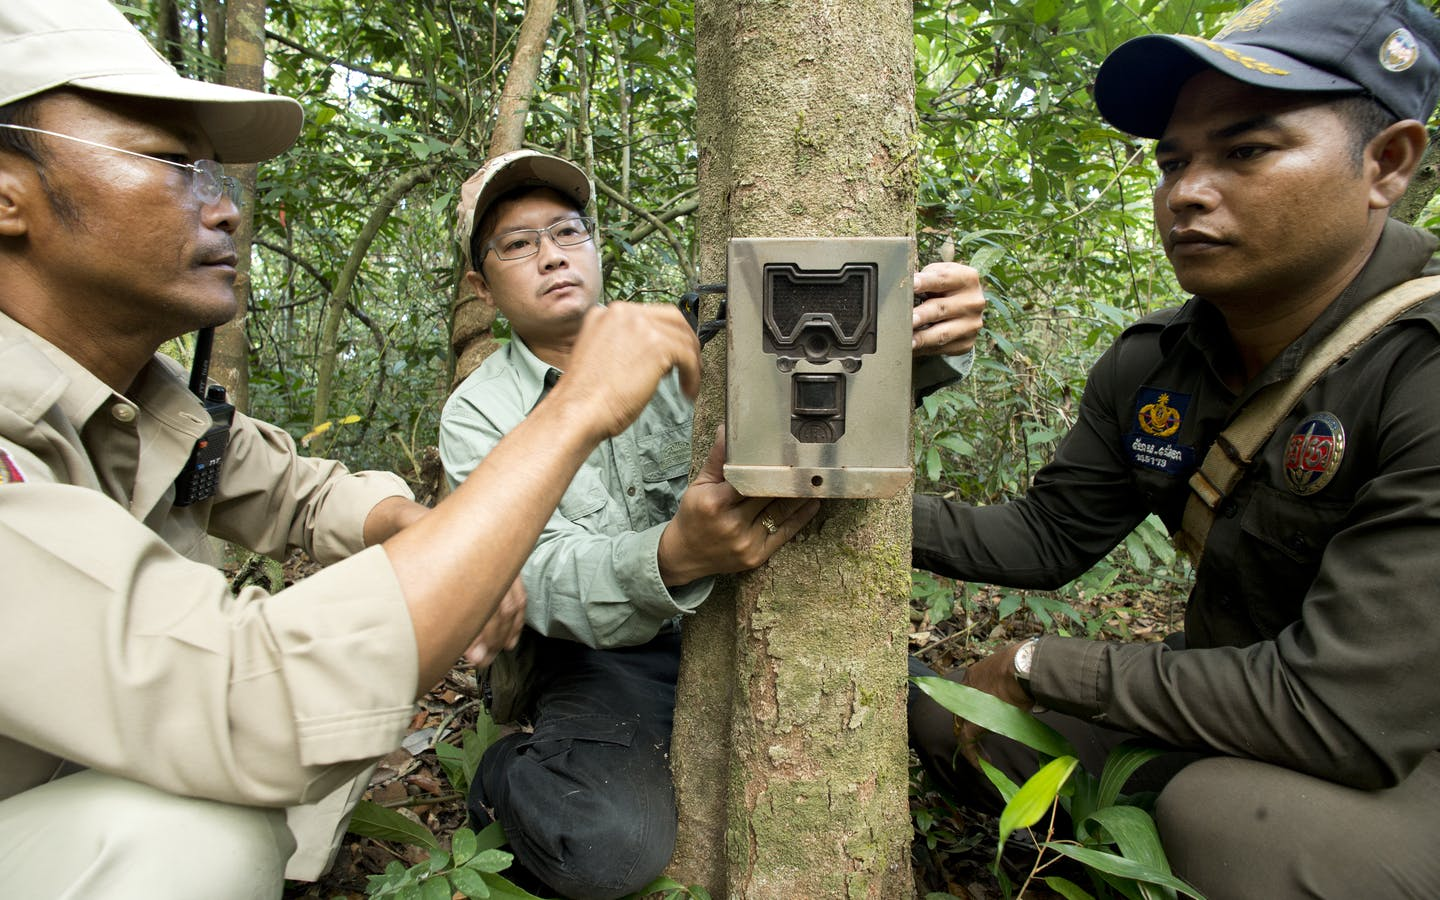 Rangers set up camera traps in the forest to record animal species within the Central Cardamom Protected Forest.